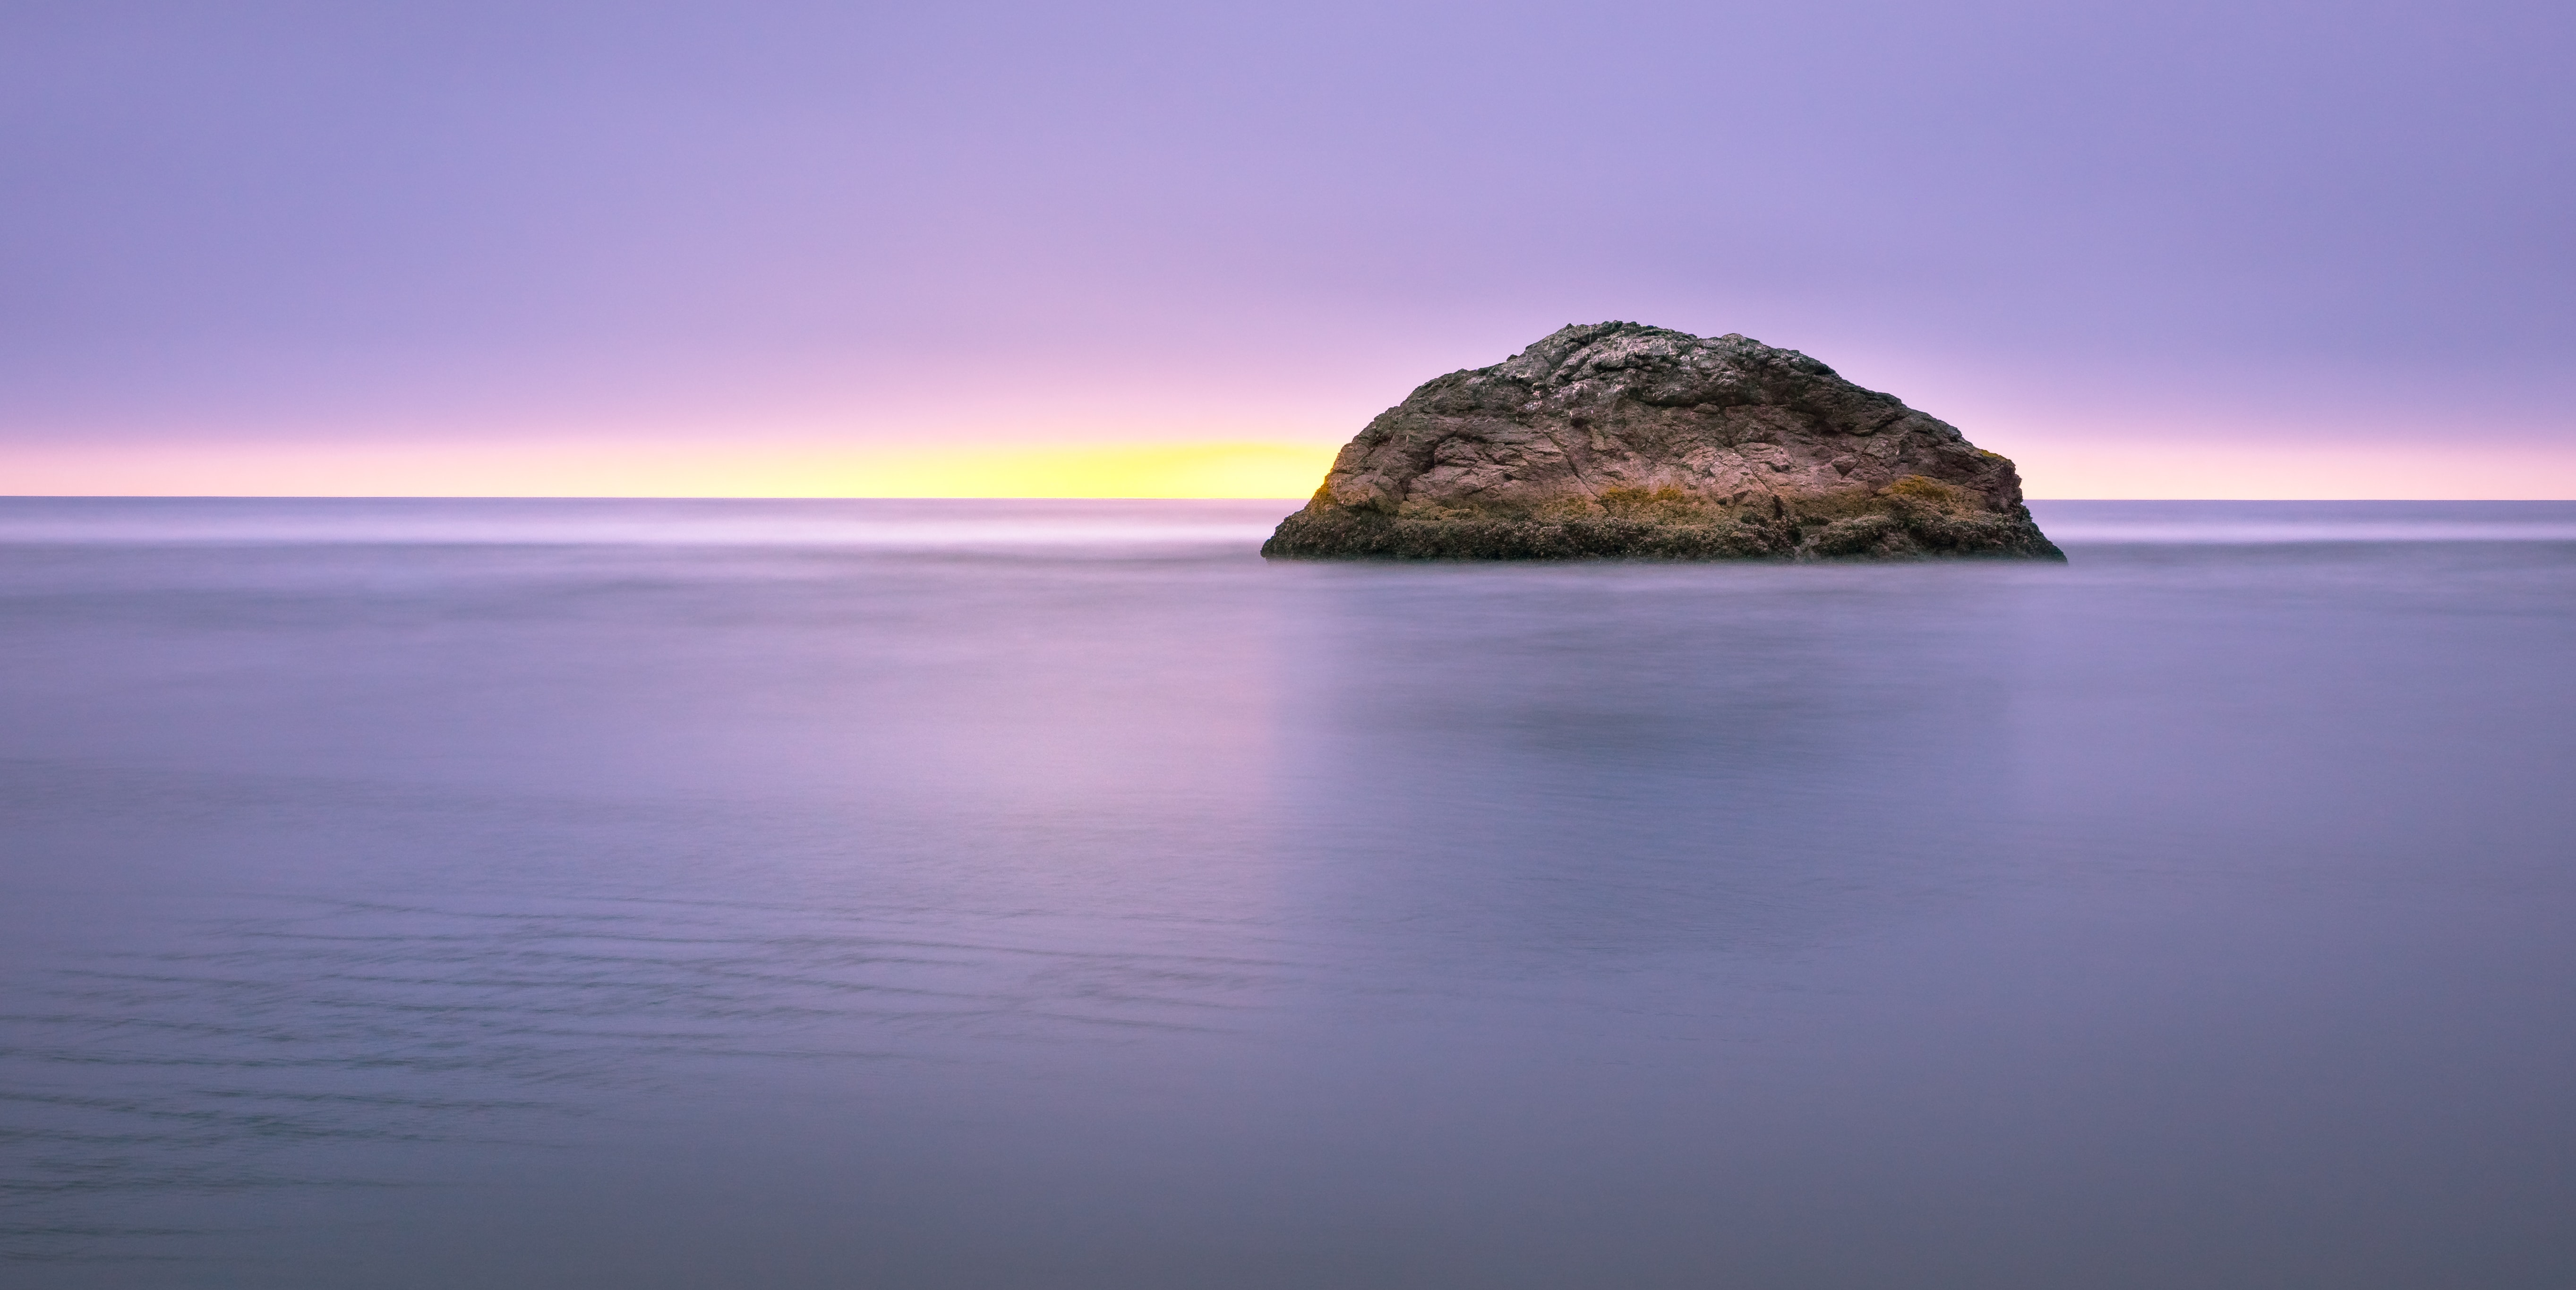 A sunset behind a single rock in the tranquil sea of Moonstone Beach Road, Trinidad, United States